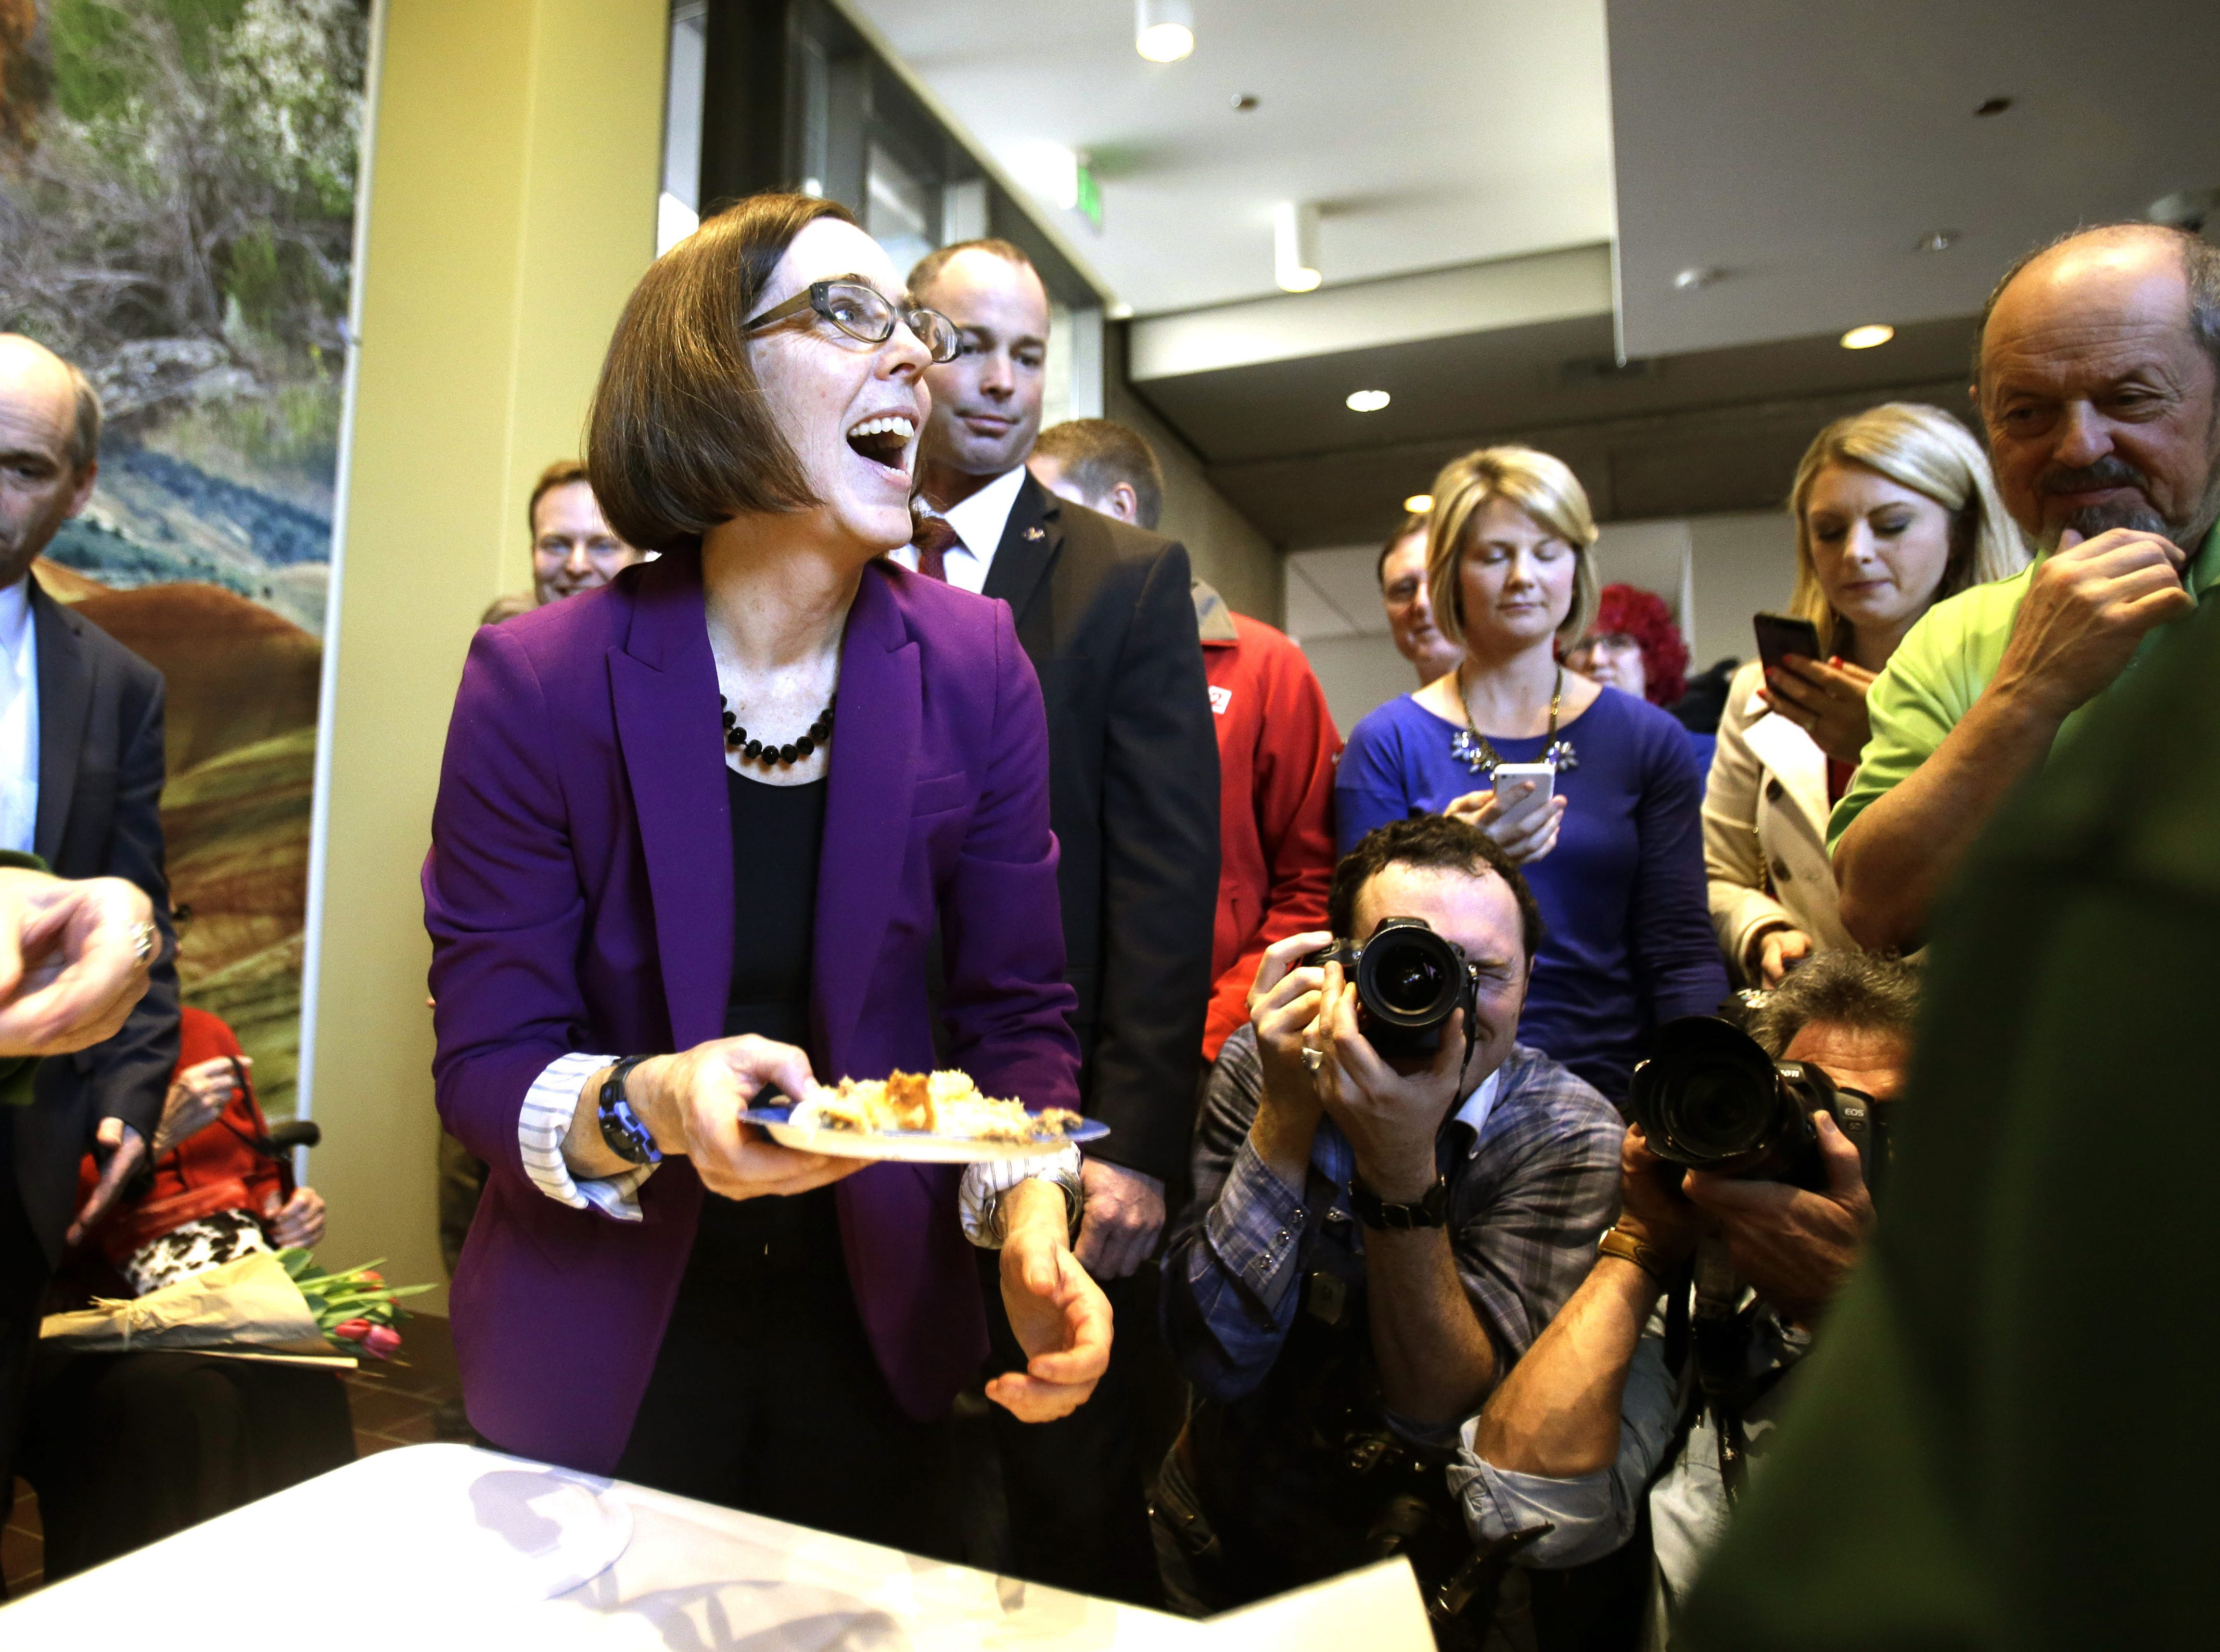 Oregon Secretary of State Kate Brown, a week before taking over as governor, serves up cake on Feb. 14, 2015, during a celebration at the Oregon Historical Society to mark the 156th anniversary of Oregon's admission to the union as the 33rd state.